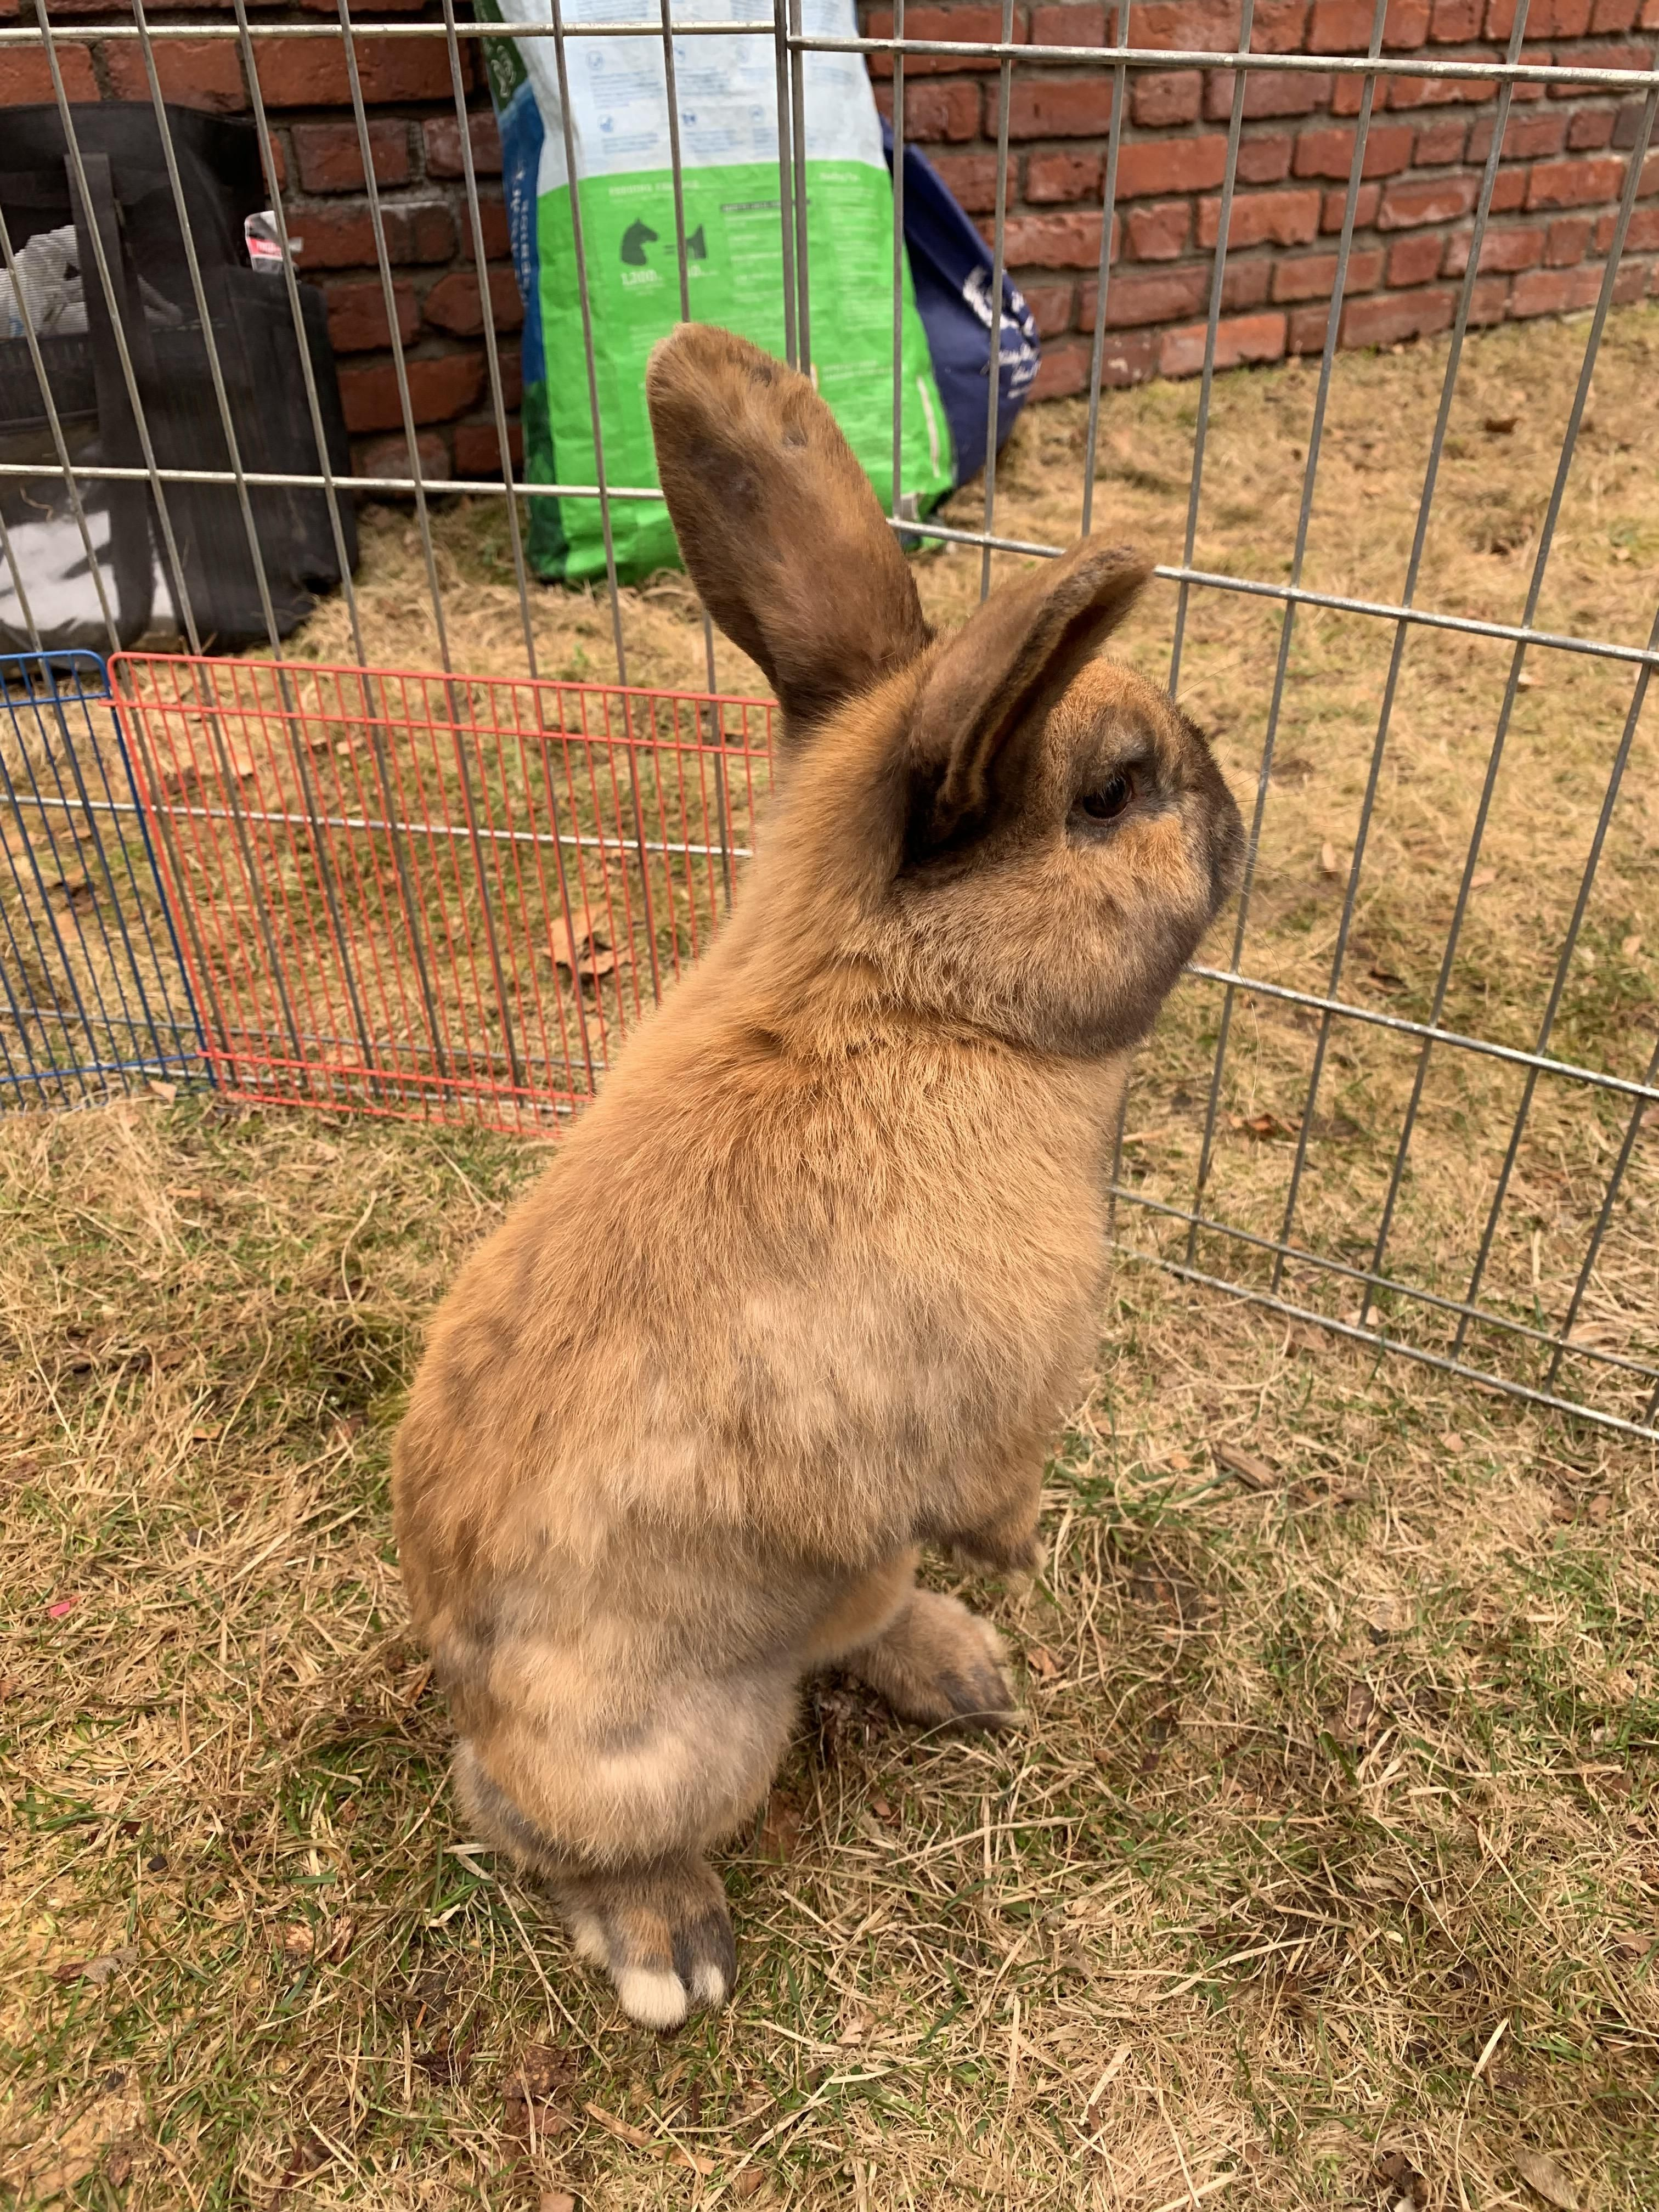 Are Rabbits Easy To Look After Low Maintenance Pets Animals For Kids Animal Companions